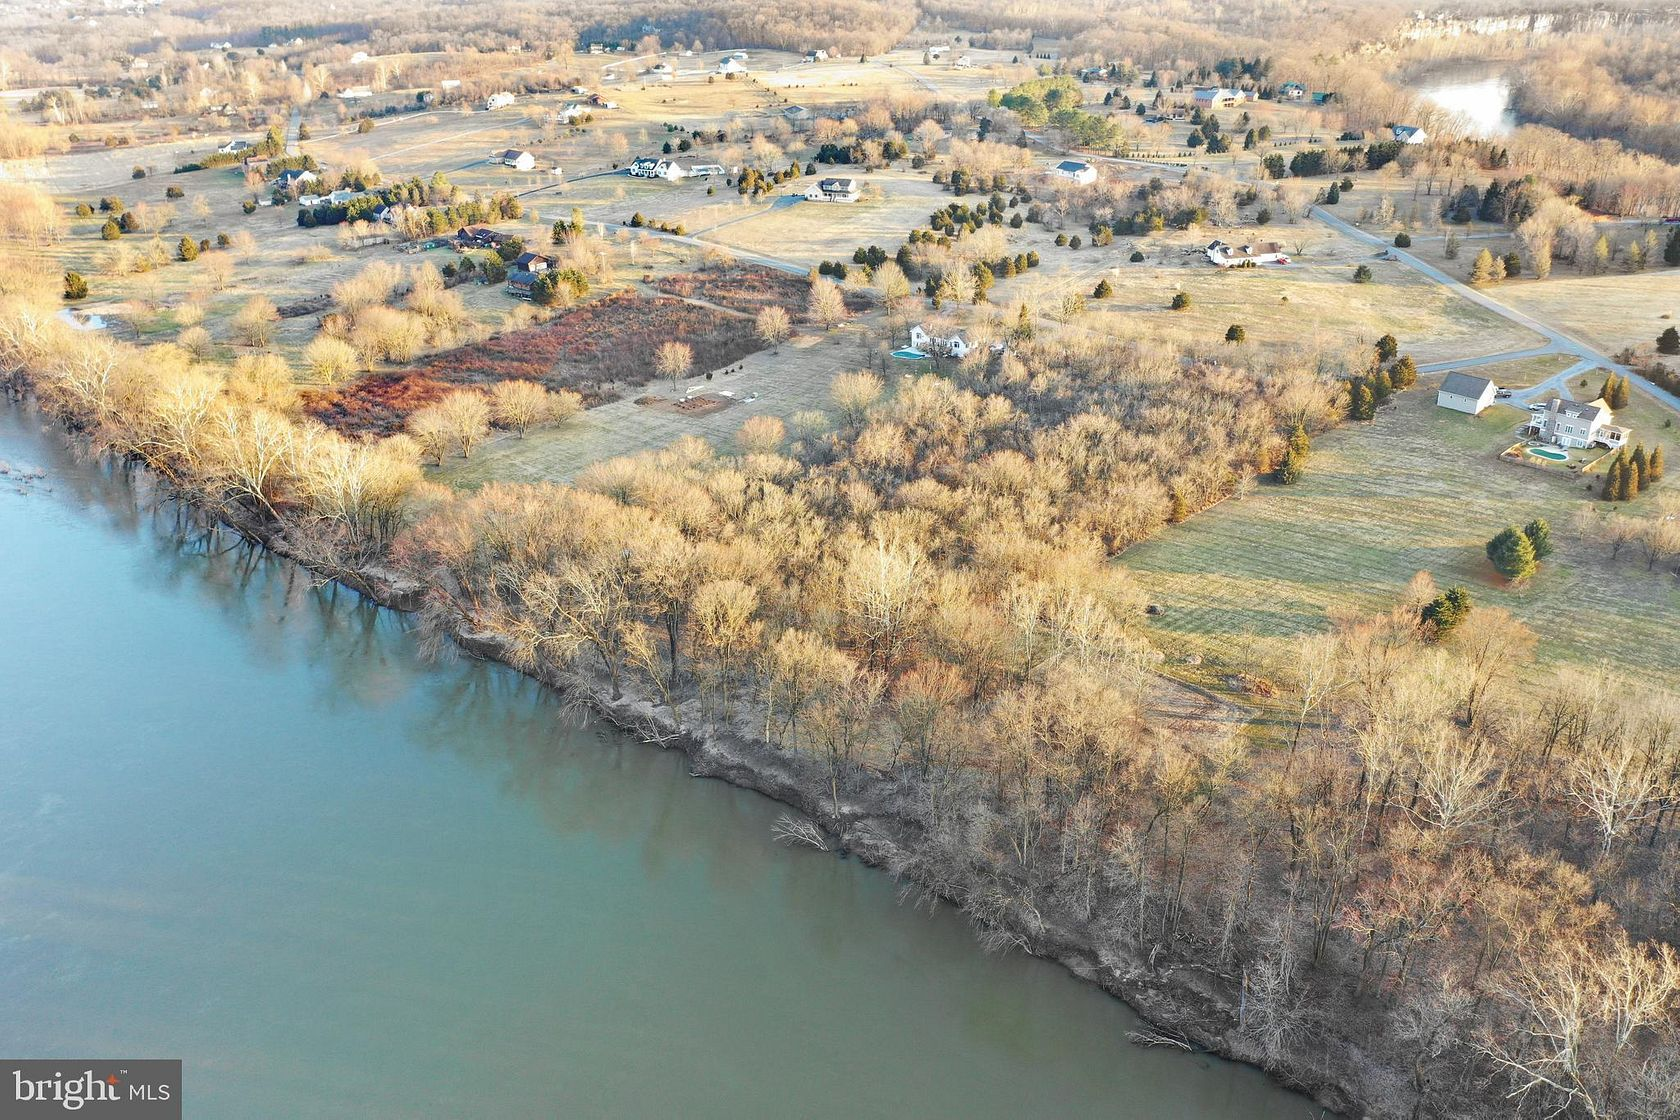 5.1 Acres of Residential Land for Sale in Falling Waters, West Virginia